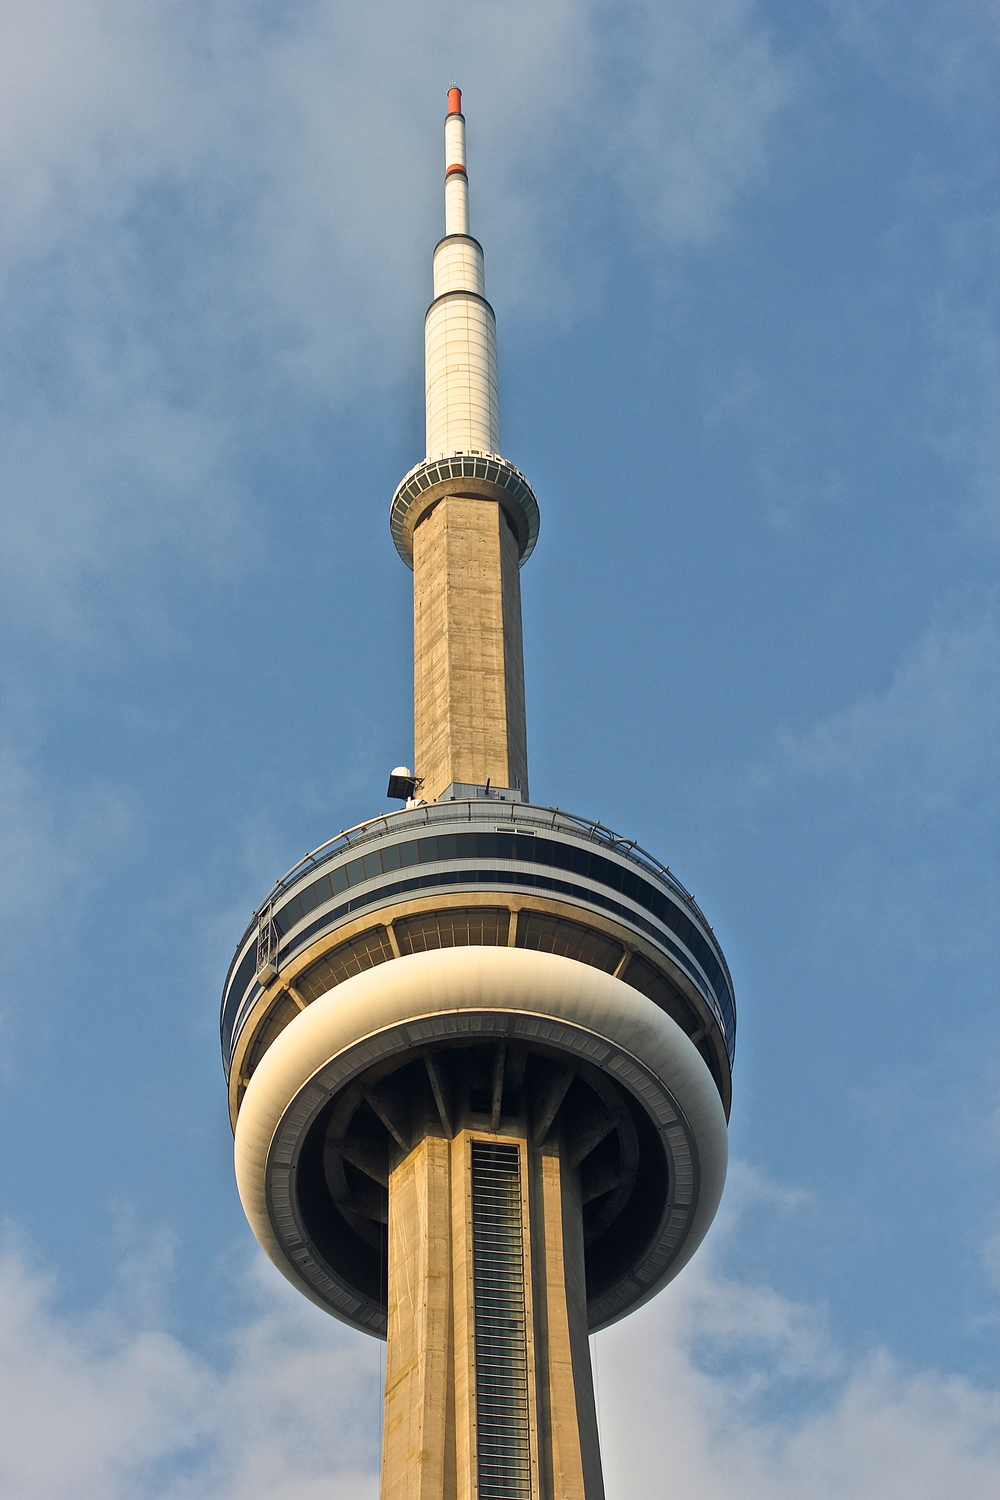 CN Tower from inside Rogers Centre